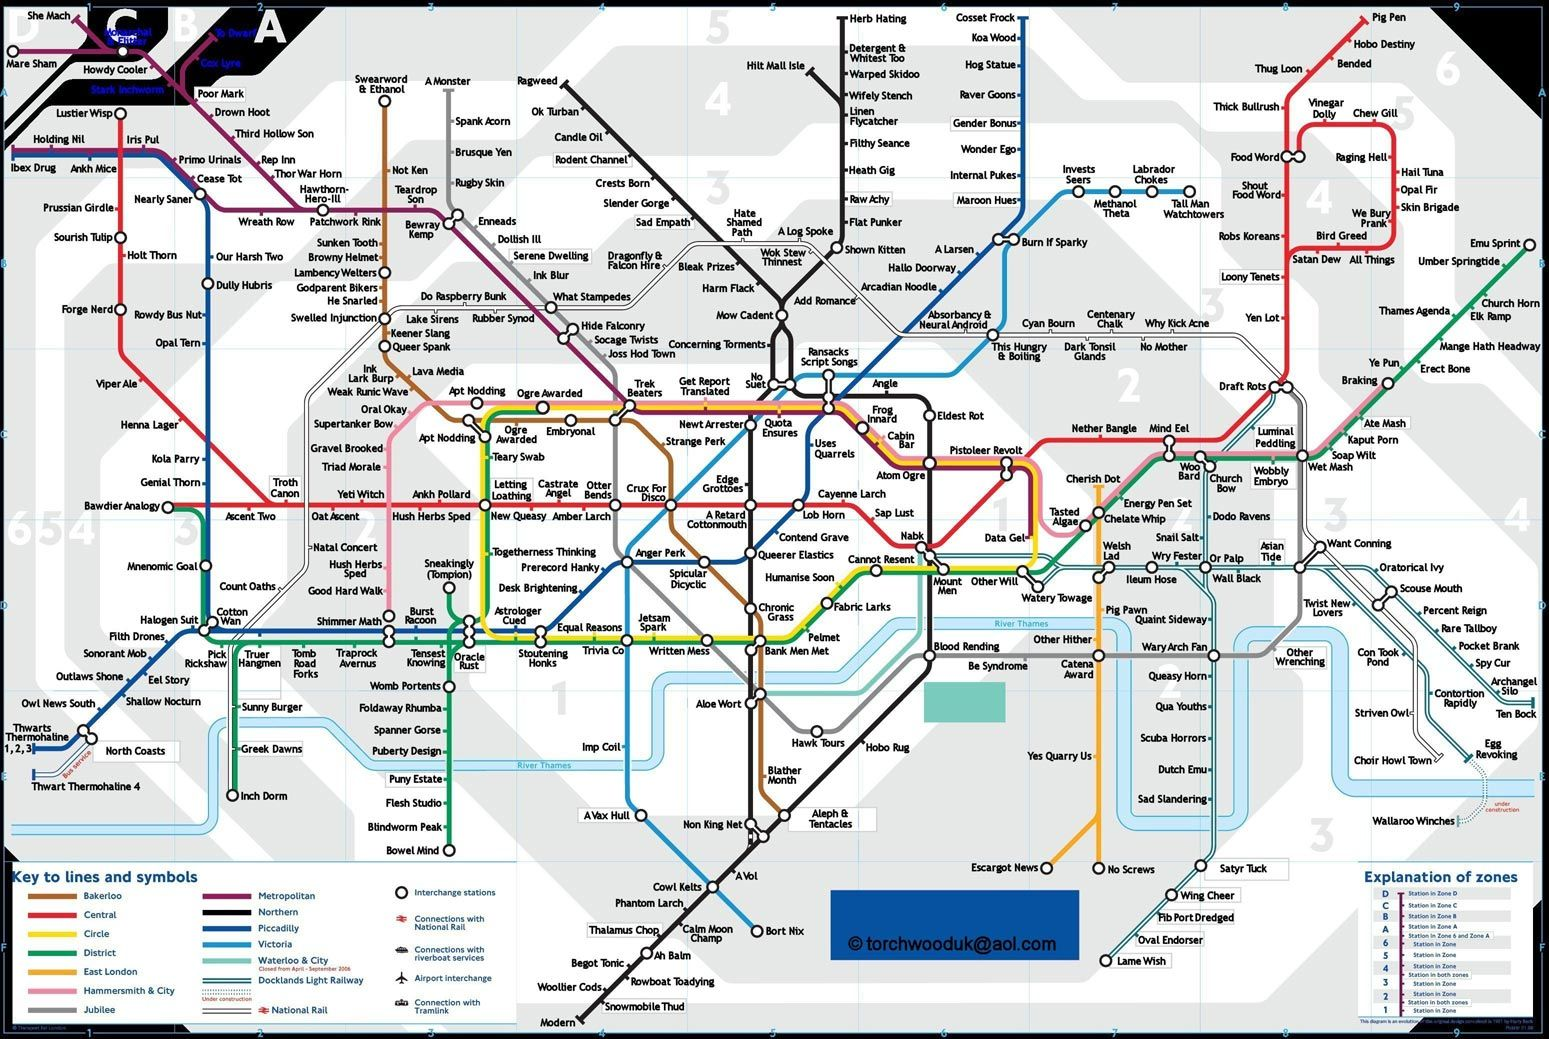 Subway Map Of London Underground.How To Use The London Underground Metro Tube System London Underground Map London Underground Tube Map London Tube Map